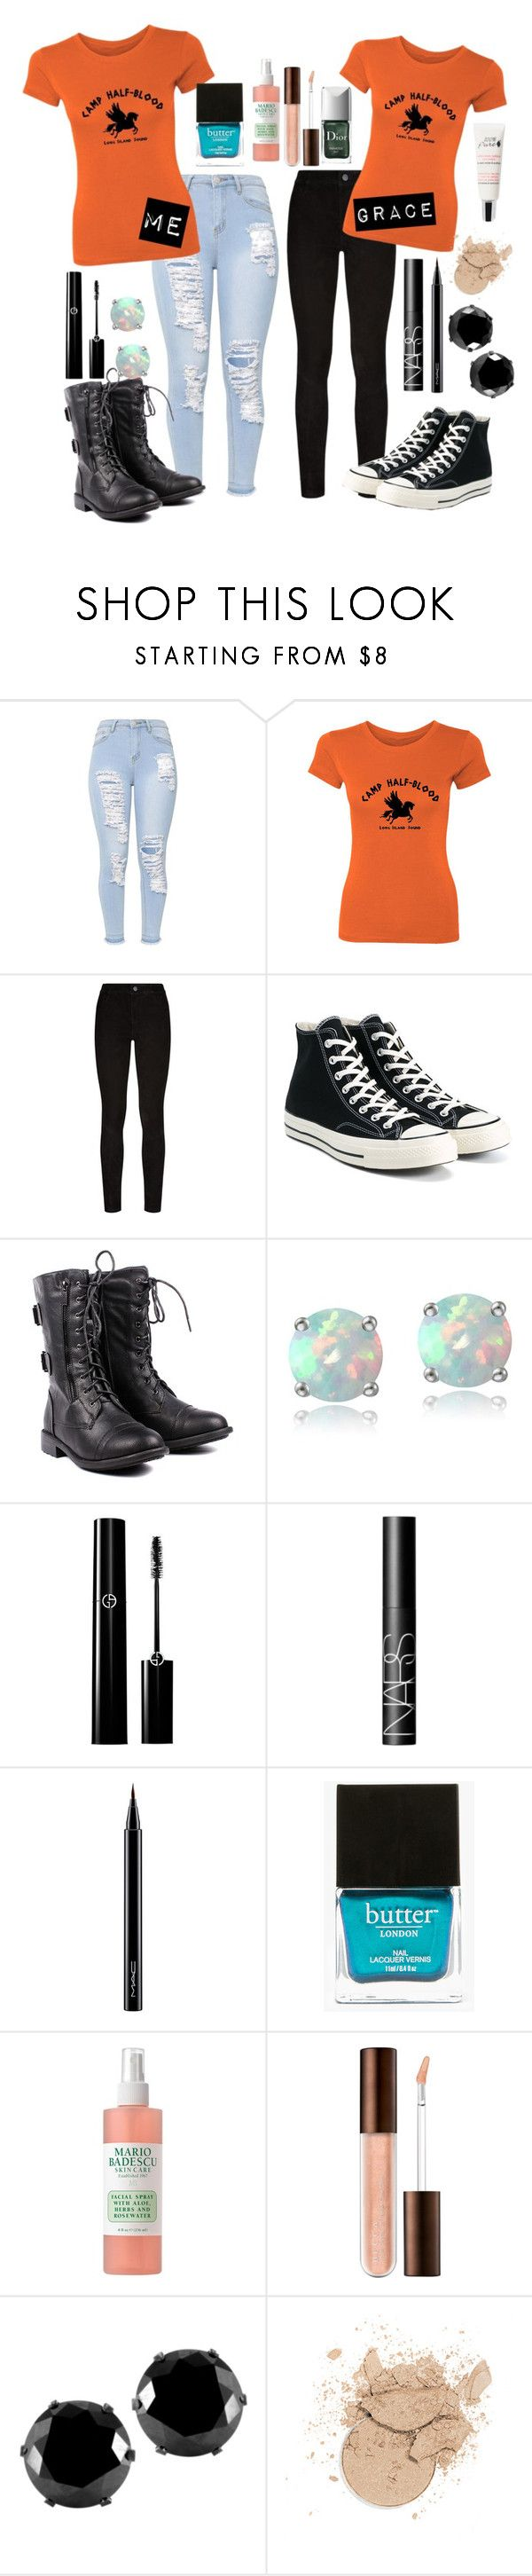 """""""Capture The Flag"""" by rayray27 ❤ liked on Polyvore featuring Paige Denim, Converse, Glitzy Rocks, NARS Cosmetics, MAC Cosmetics, Butter London, Couture Colour, Mario Badescu Skin Care and West Coast Jewelry"""